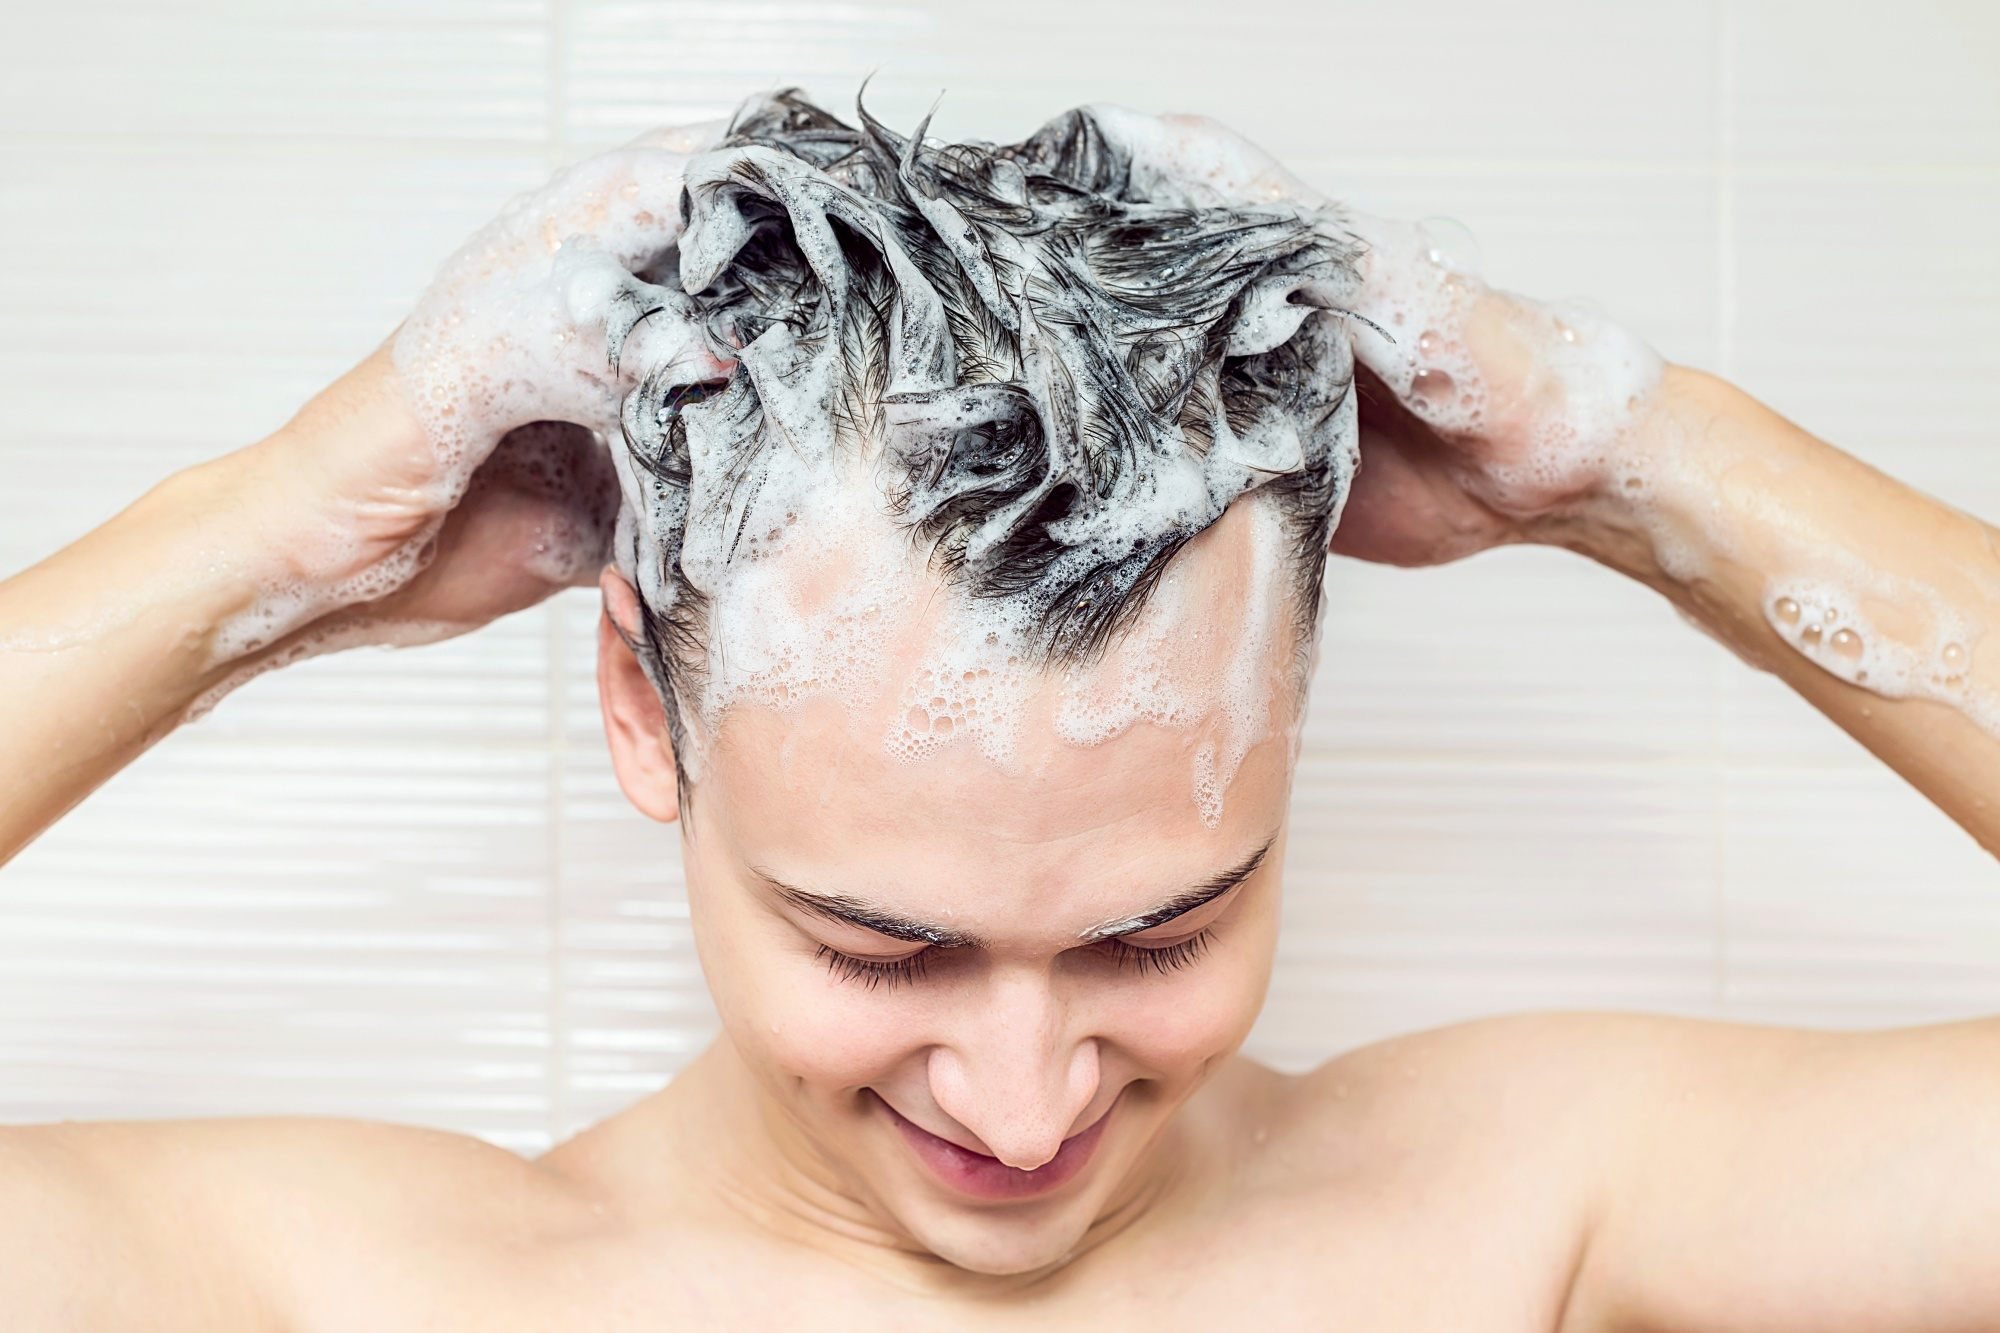 How to deep cleanse your scalp: Closeup shot of a man shampooing his hair